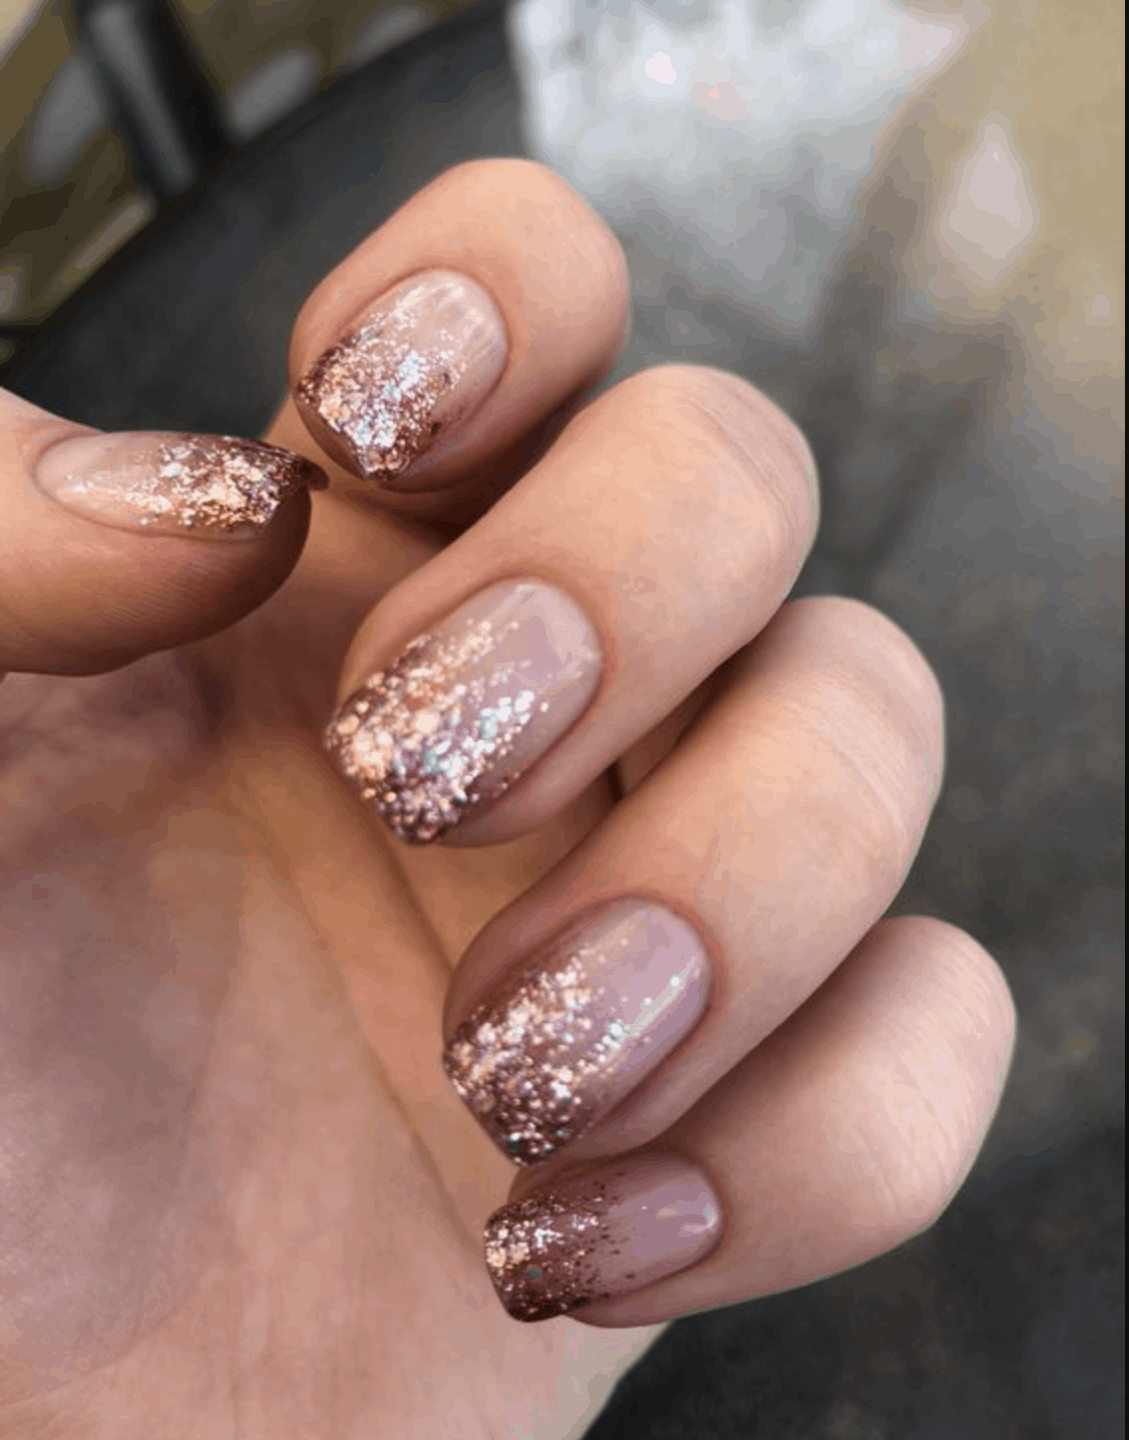 10 Holiday Nail Ideas for 2019 - An Unblurred Lady